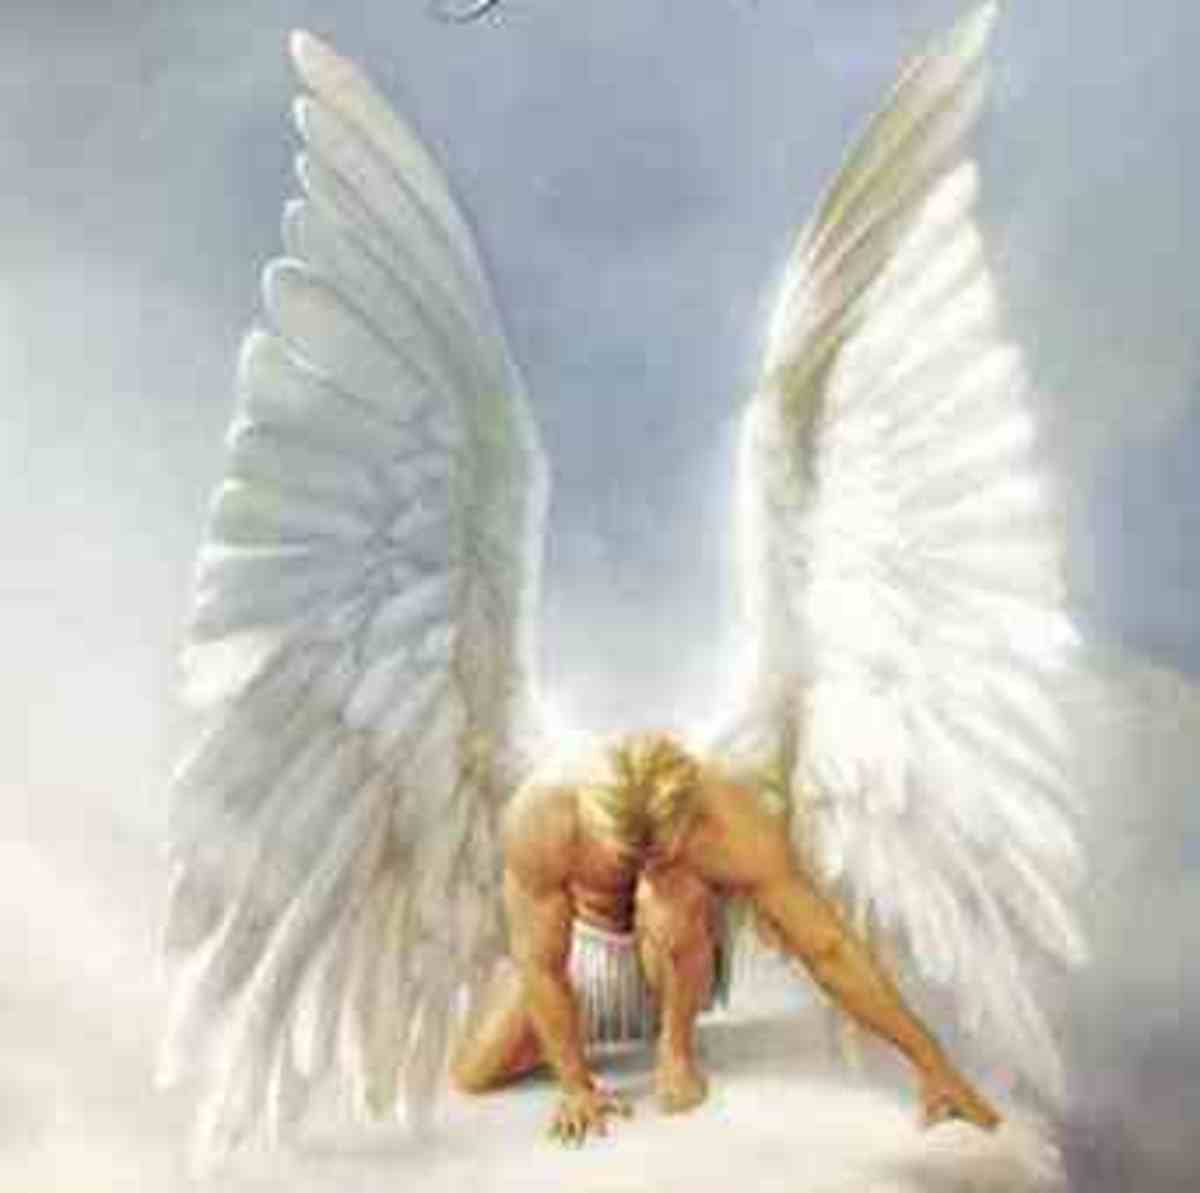 angels-do-you-believe-they-help-you-in-times-of-emotional-or-physical-crisis